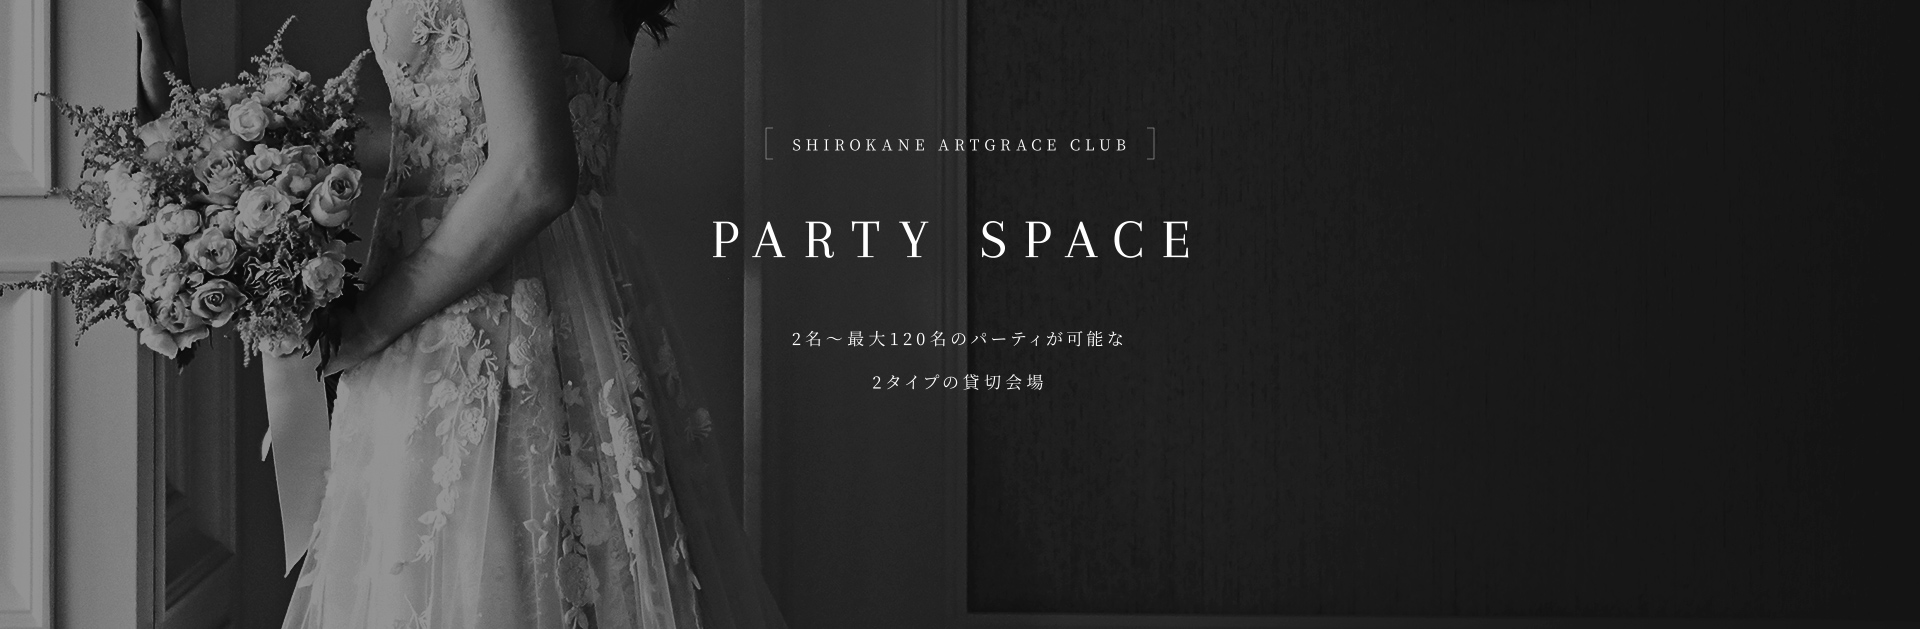 PARTY SPACE 2名~最大120名のパーティが可能な2タイプの貸切会場